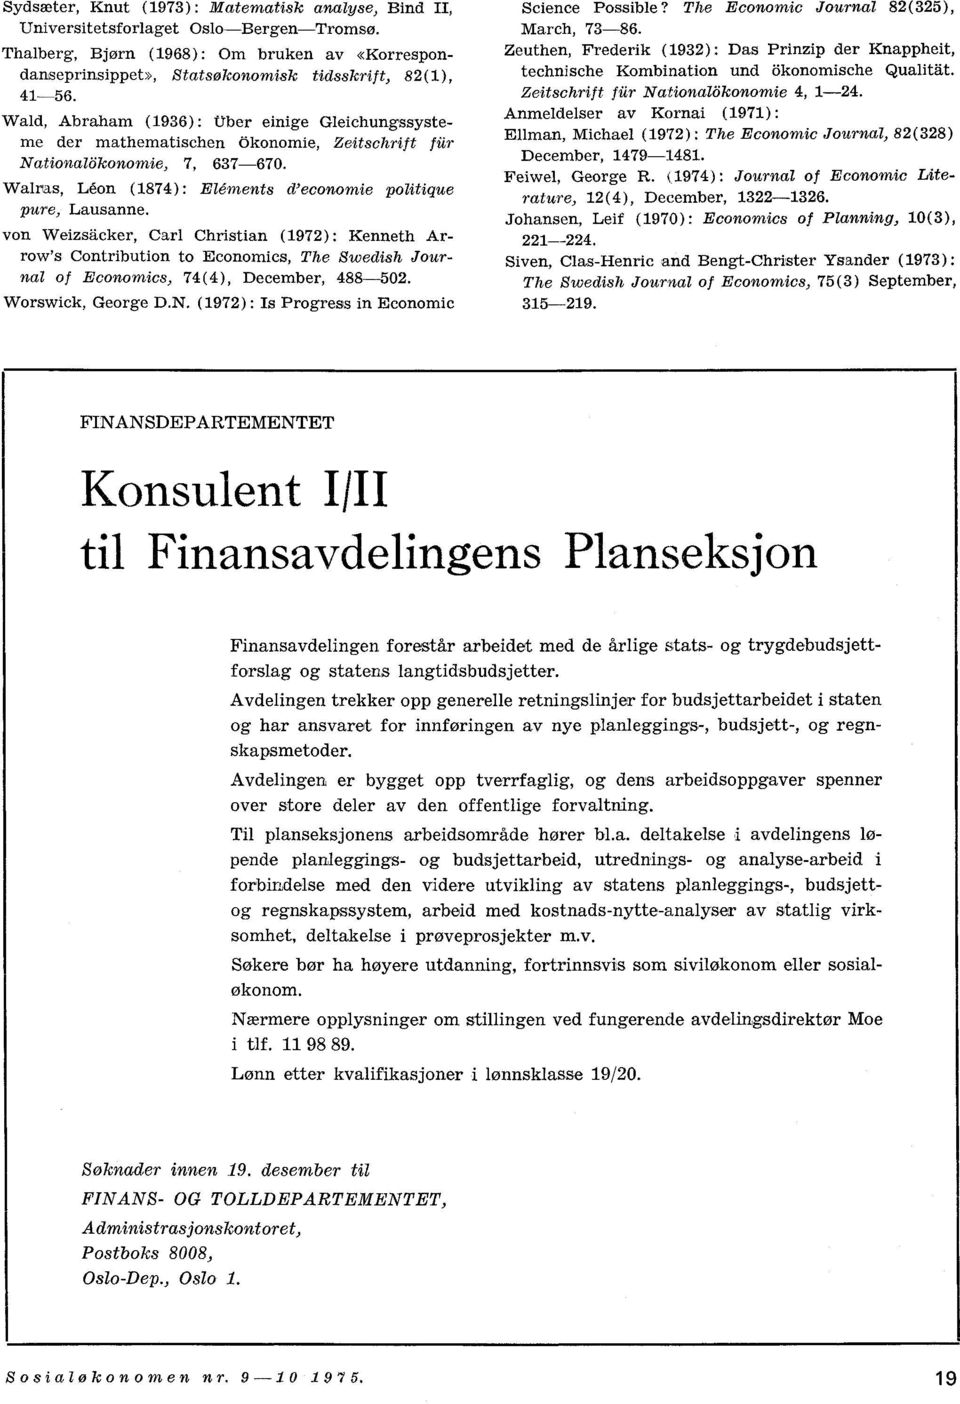 von Weizsäcker, Carl Christian (1972): Kenneth Arrow's Contribution to Economics, The Swedish Journal of Economics, 74(4), December, 488-502. Worswick, George D.N.